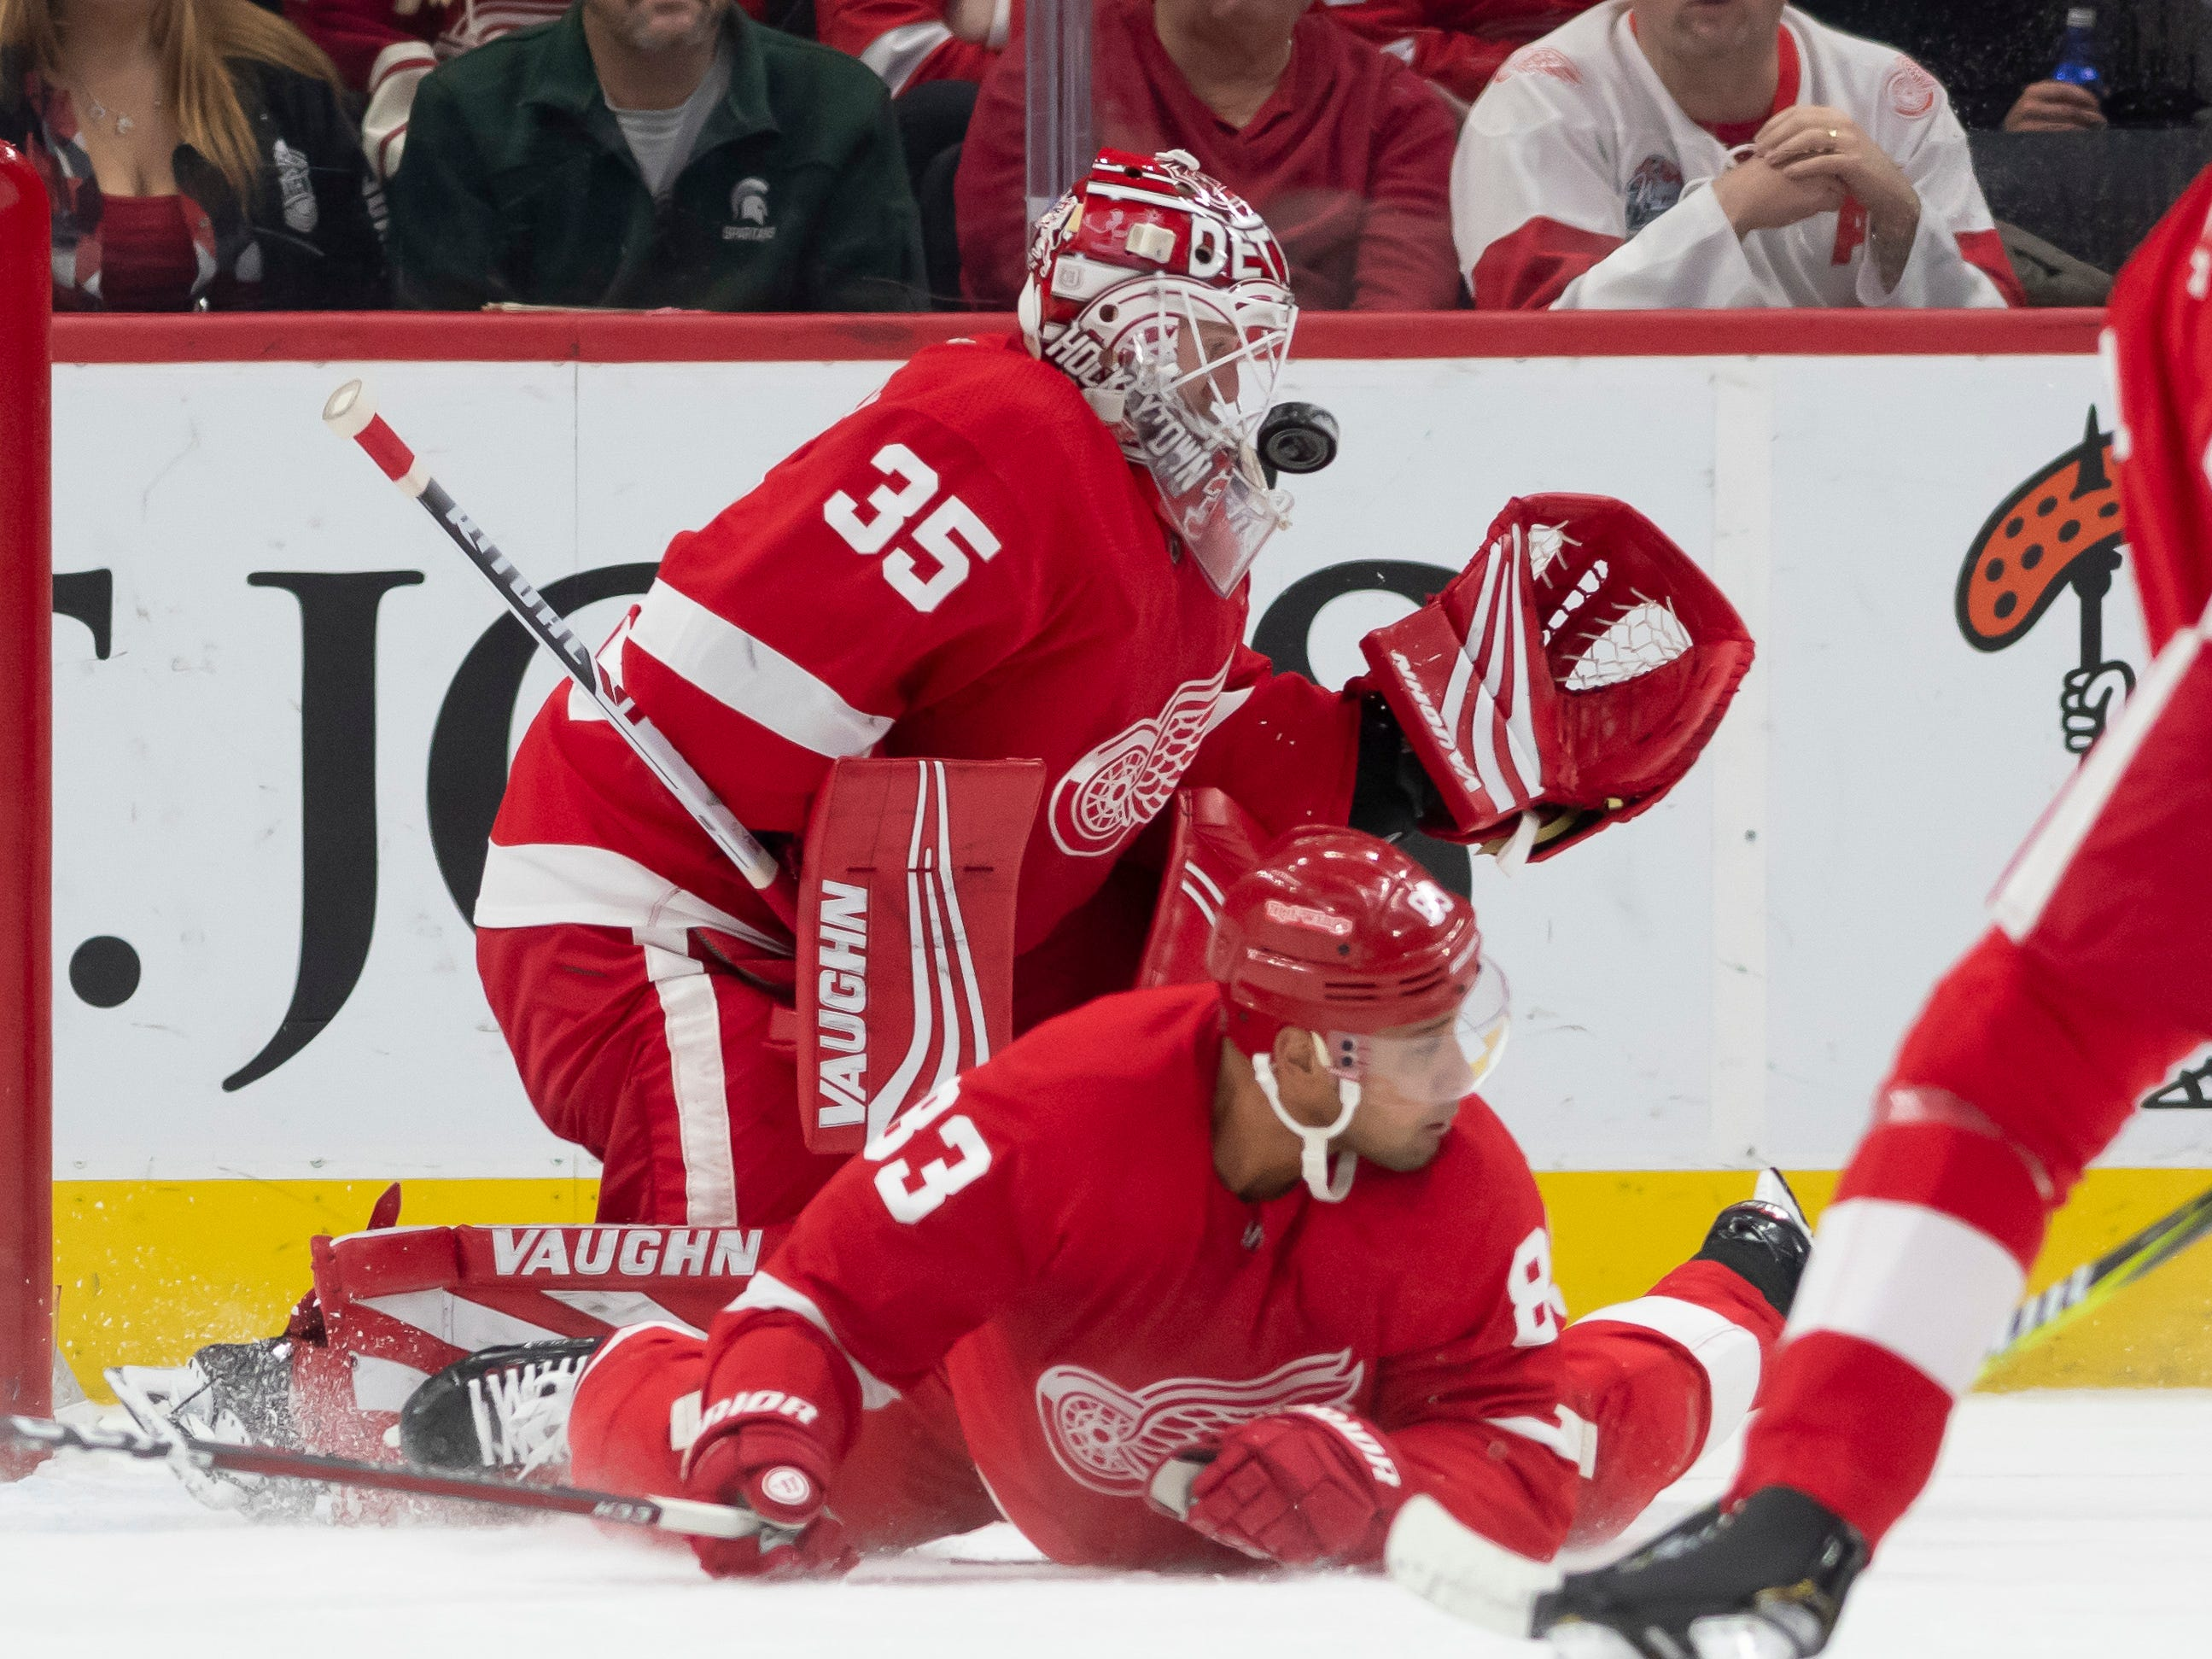 Detroit defenseman Trevor Daley tries to block a shot as goaltender Jimmy Howard stops the puck with his mask in the first period.